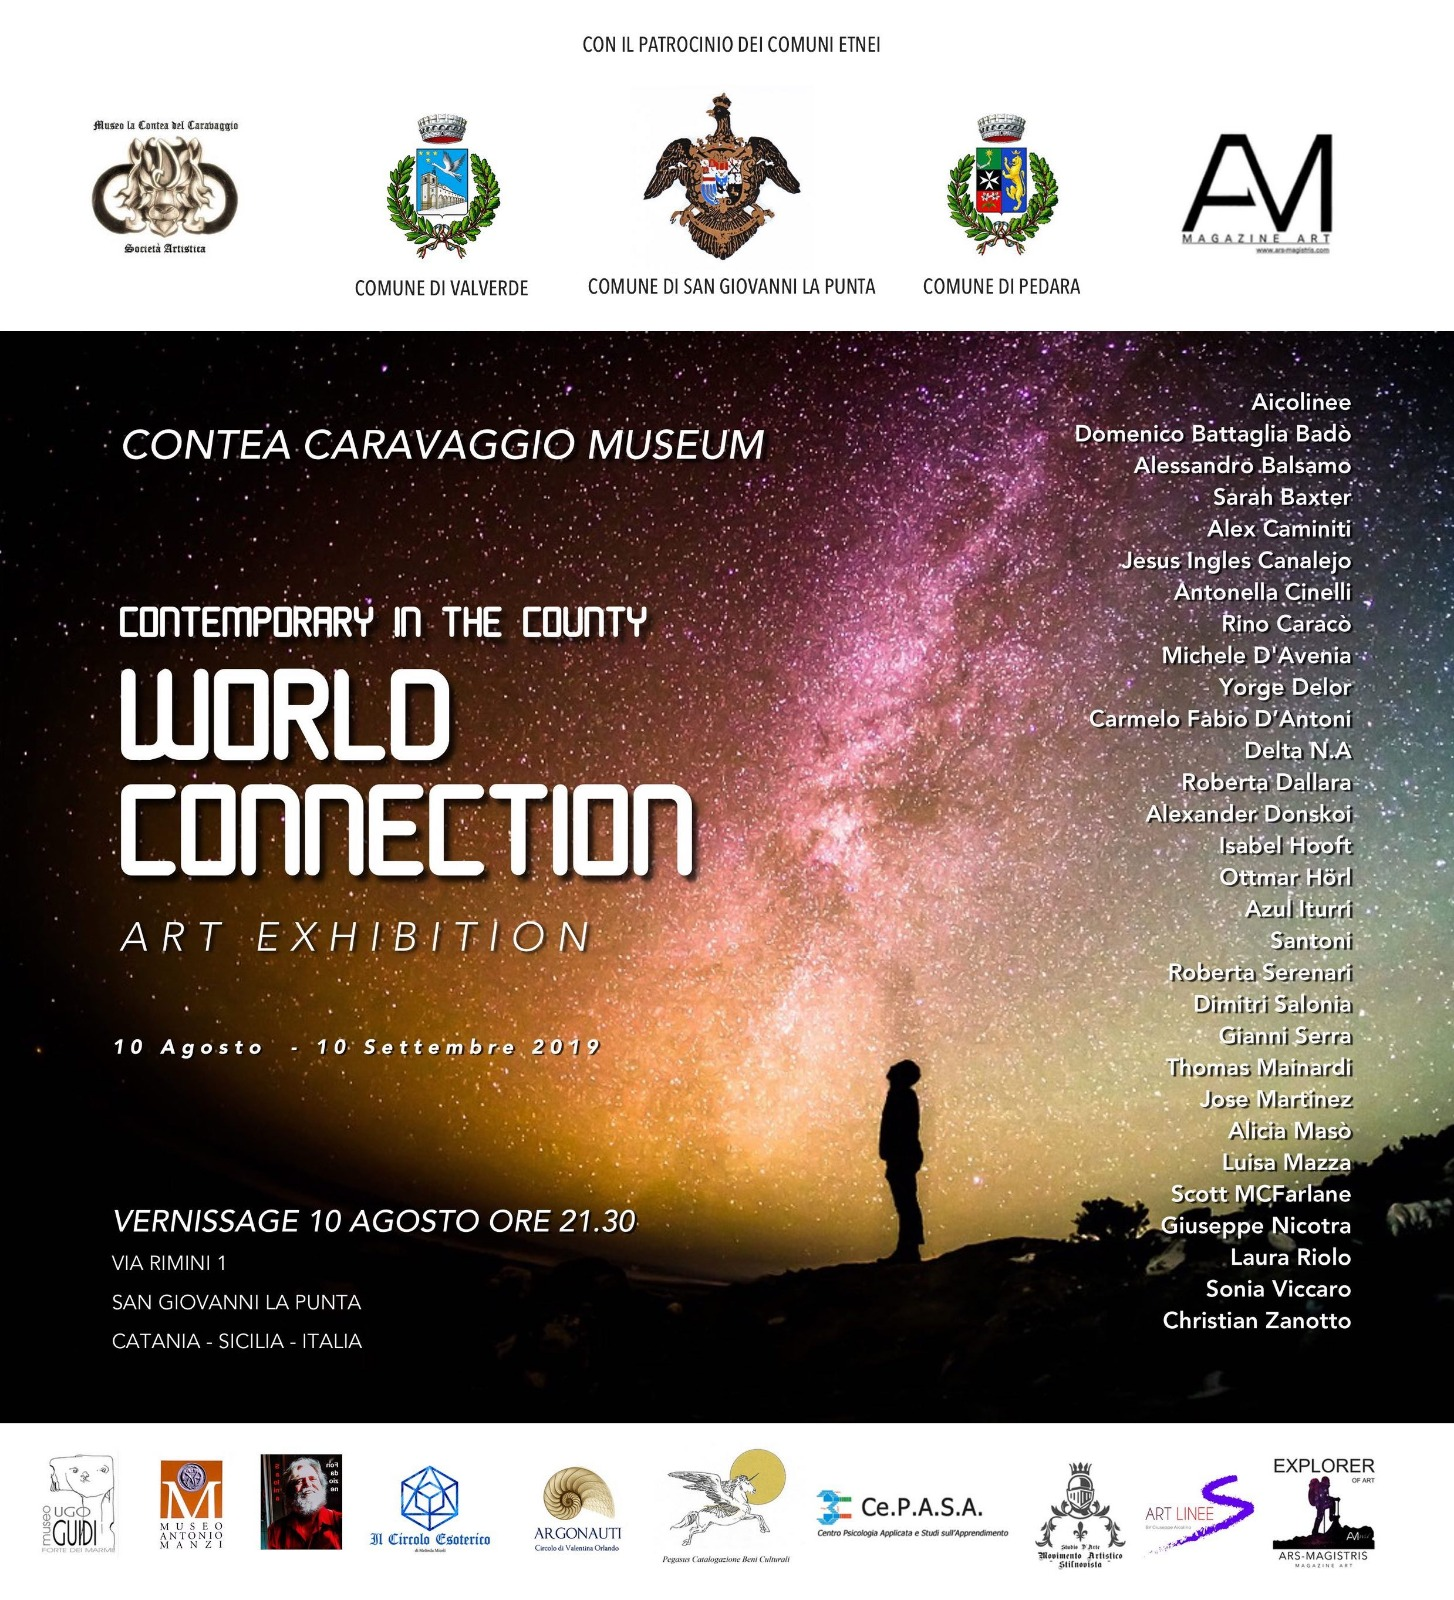 S.G.La Punta. Mostra Contemporary in The County – World Connection 2019